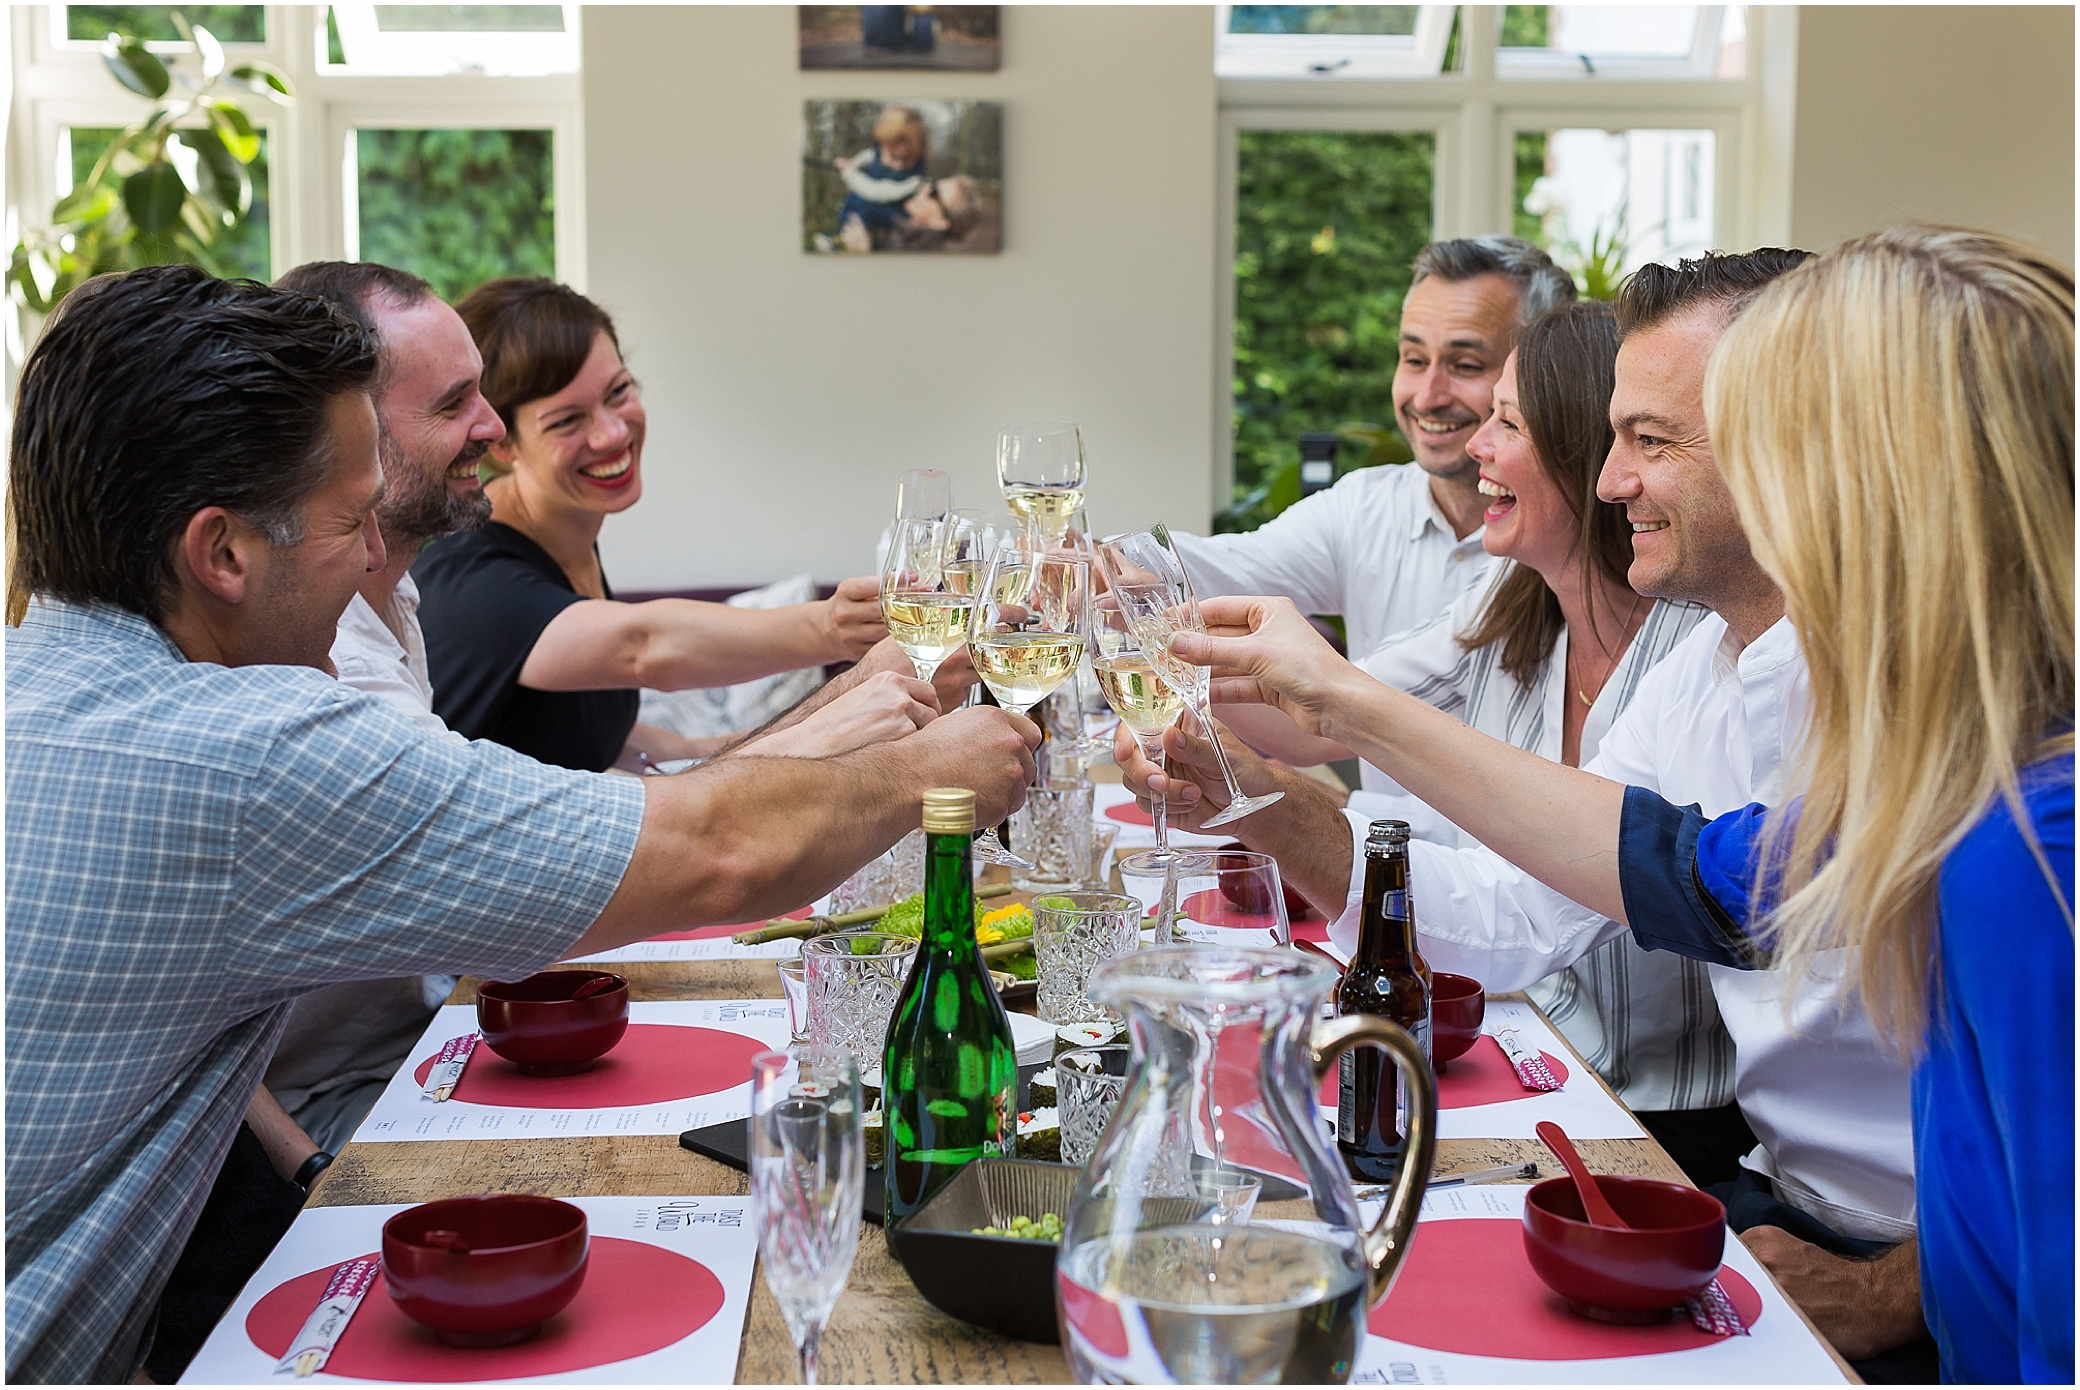 Dinner party with friends clinking glasses